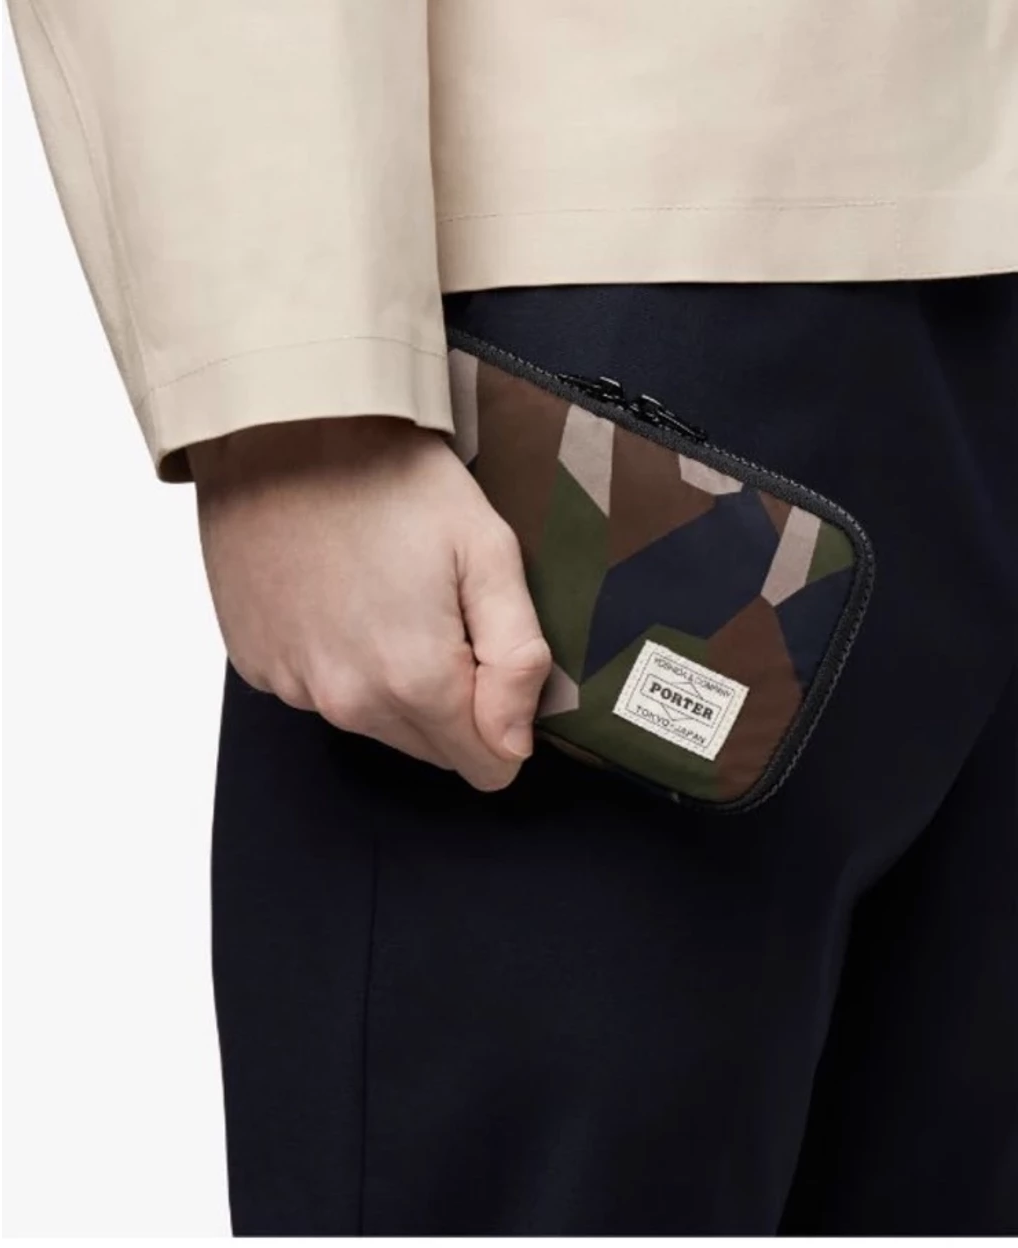 Porter X Mackintosh Zip Wallet Clutch Pouch *NEW WITH TAGS*